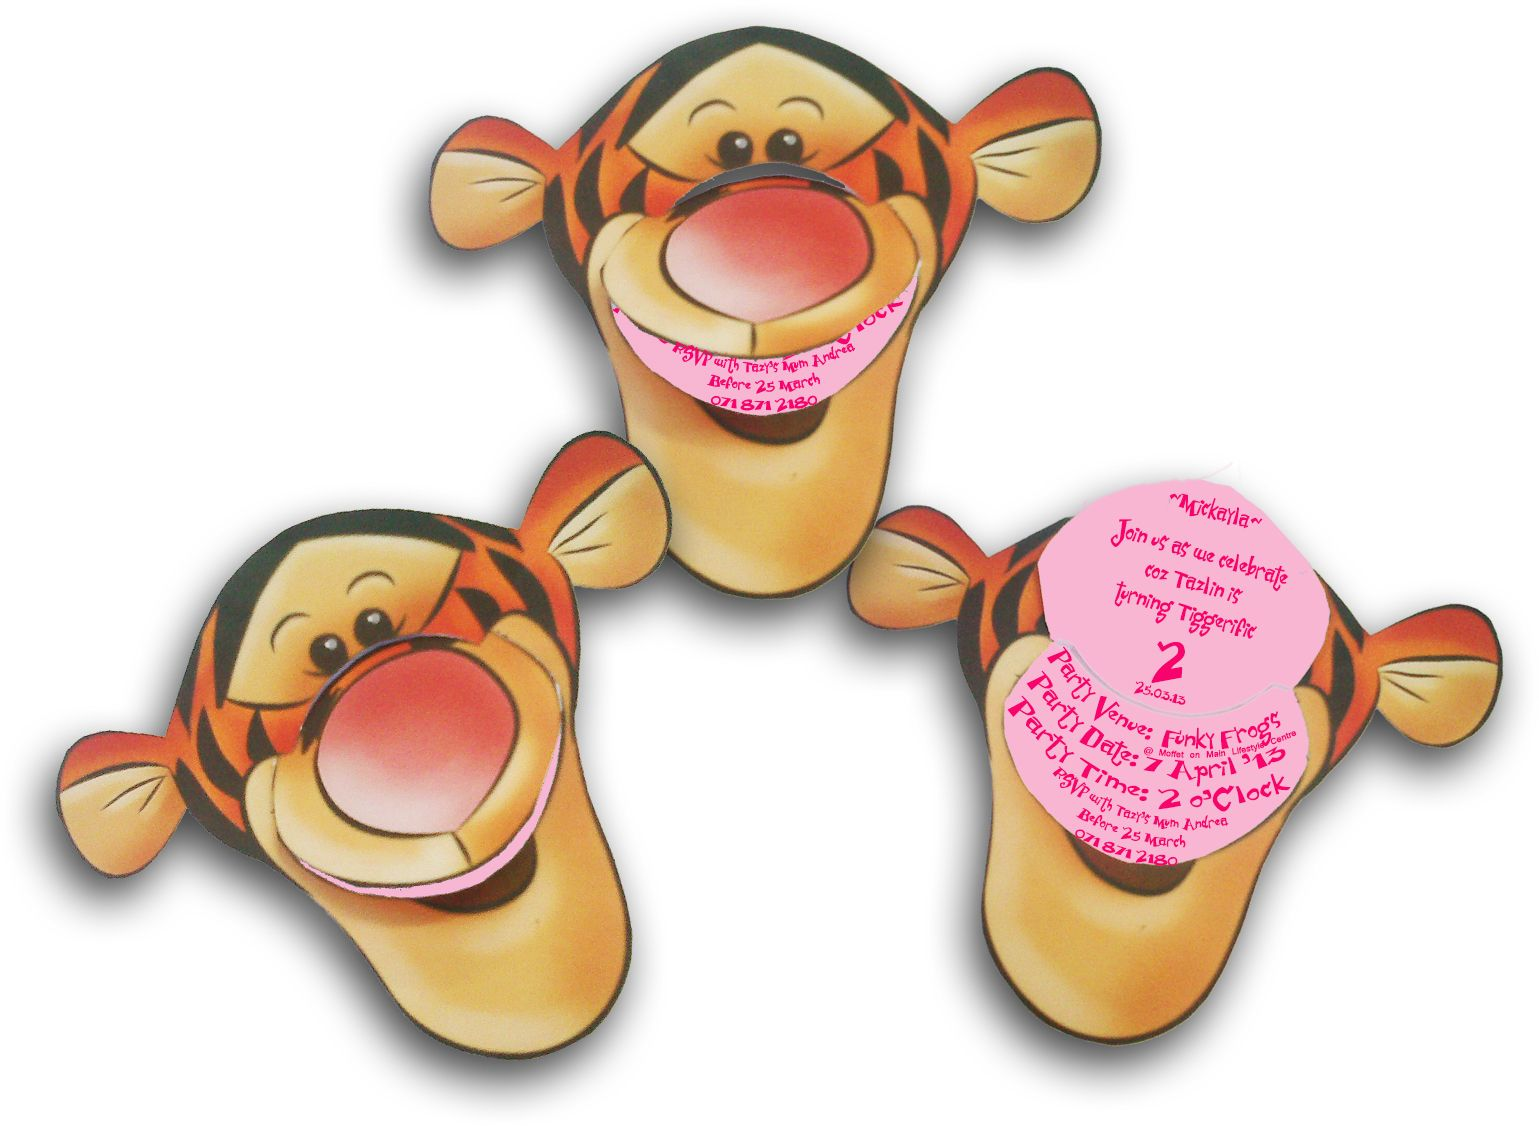 Tigger Invites How to put a girly touch without making Tigger look – Tigger Birthday Party Invitations